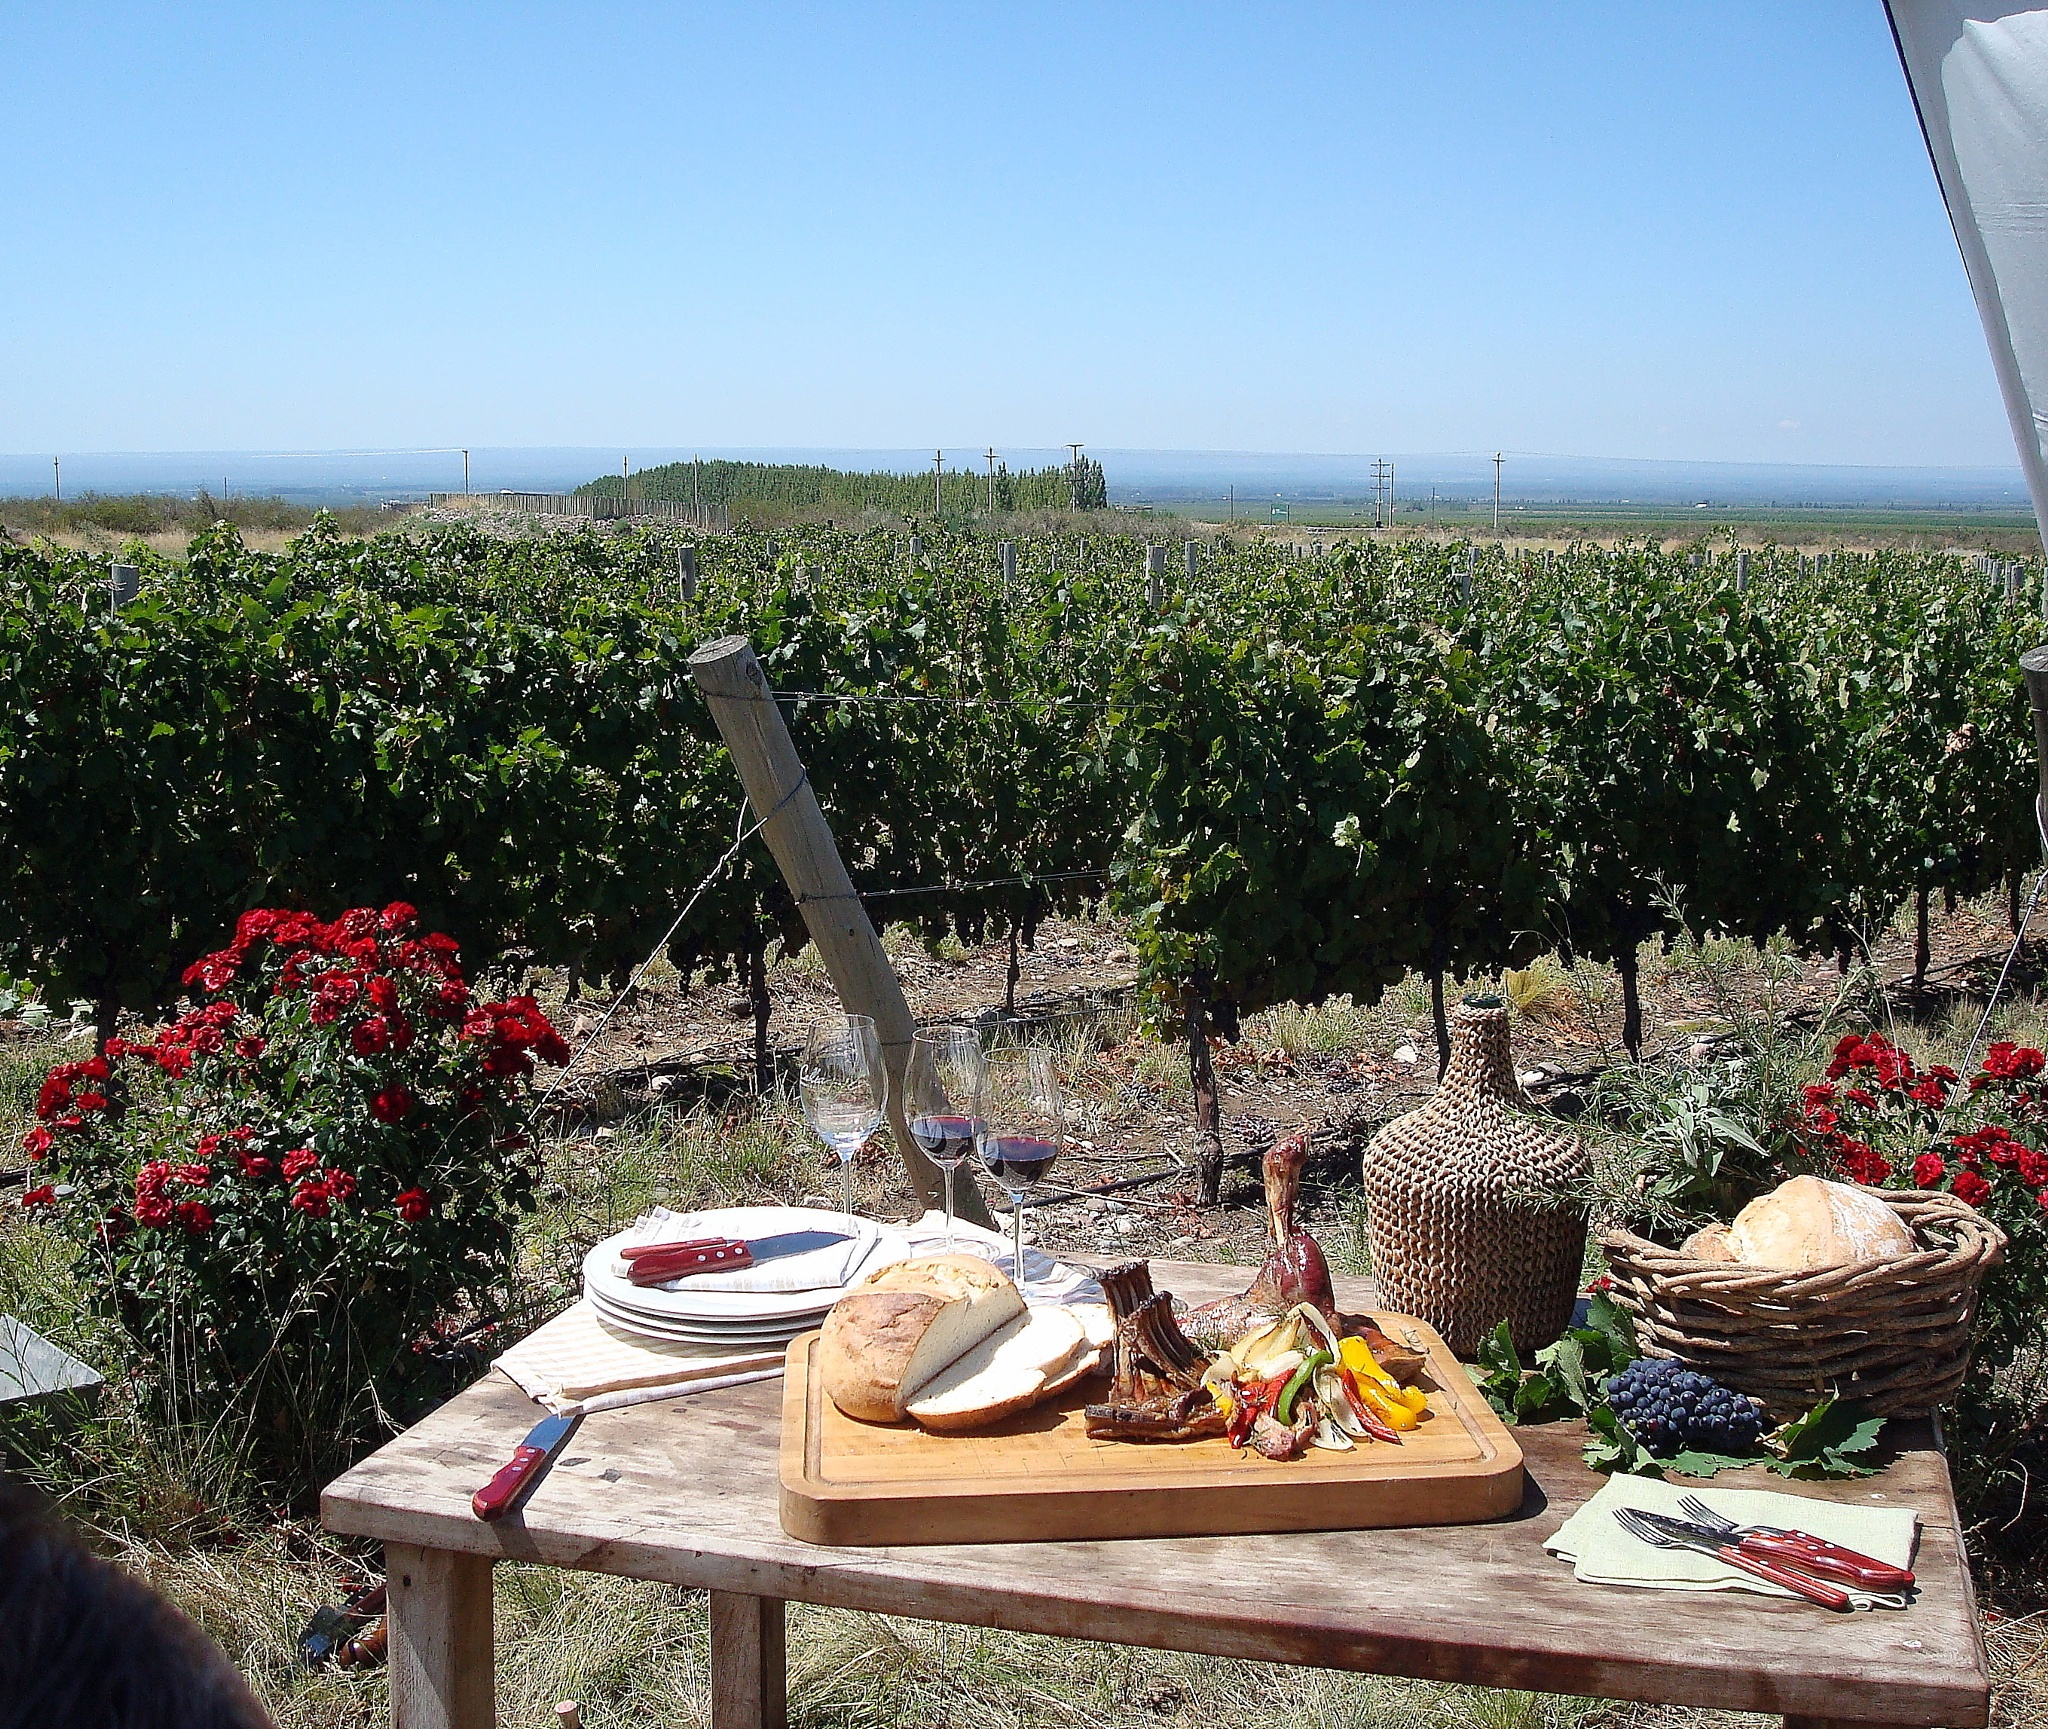 Lunch in the vineyards by Roberto Justo Robiolo